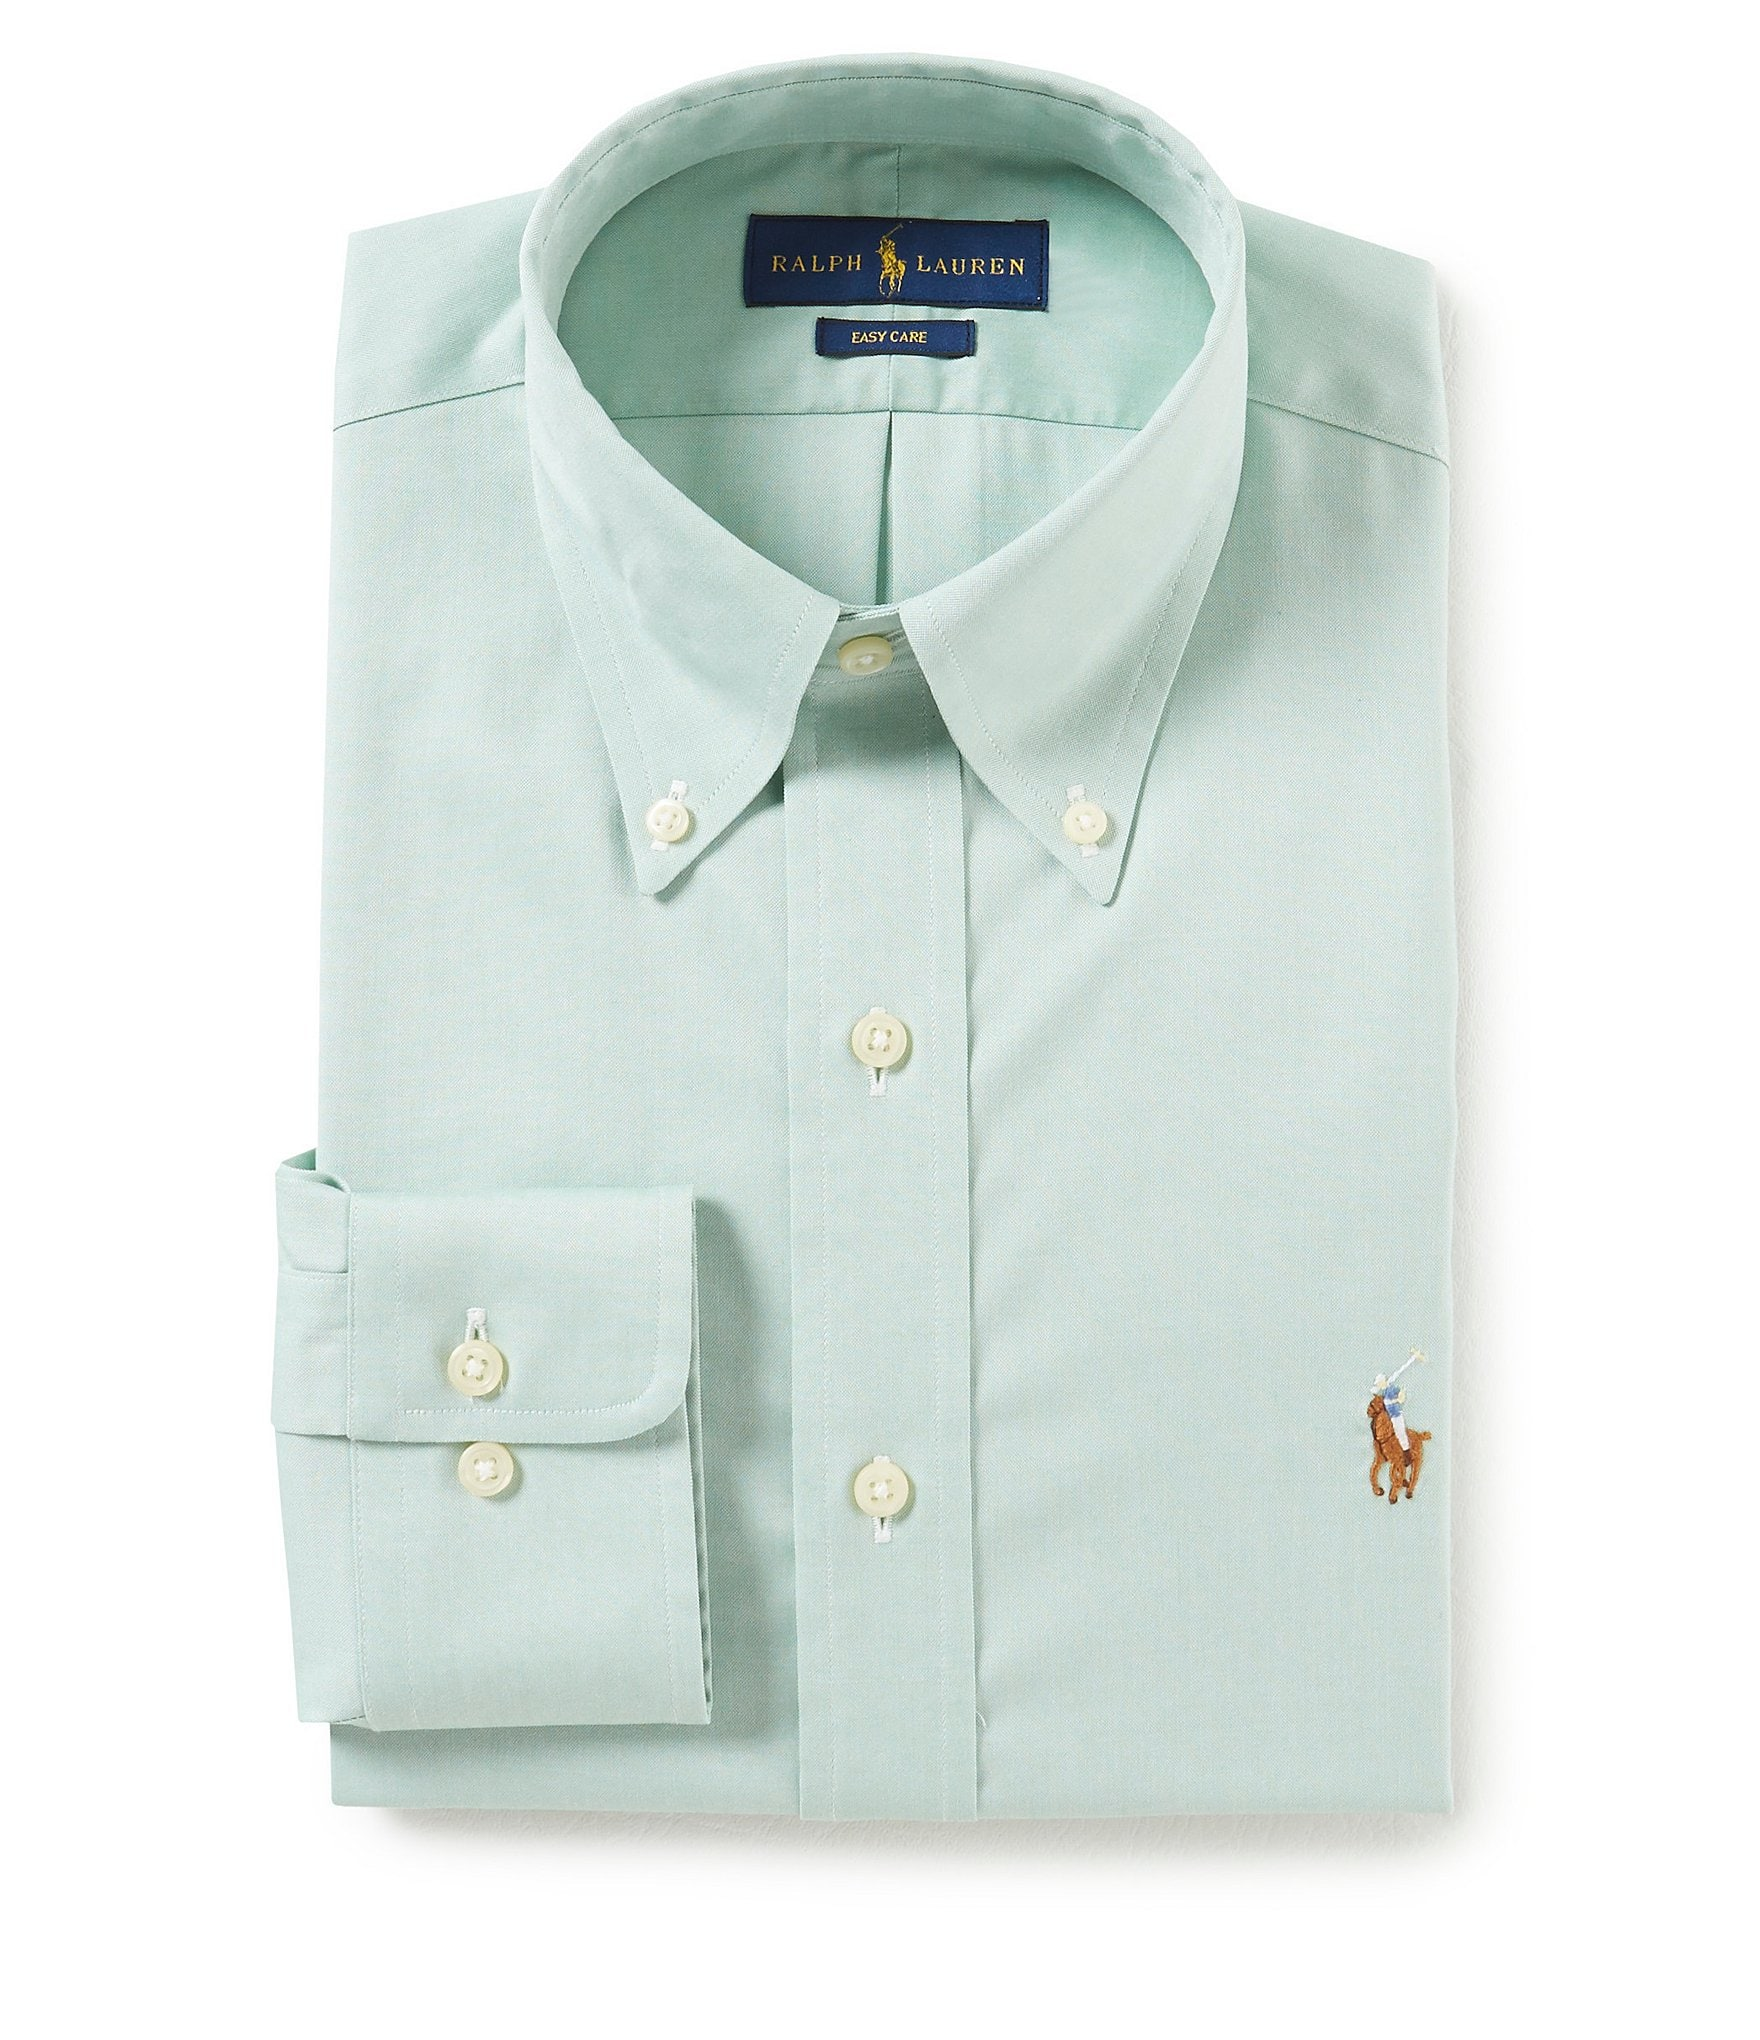 Polo Ralph Lauren Easy Care Standard Fit Button Down